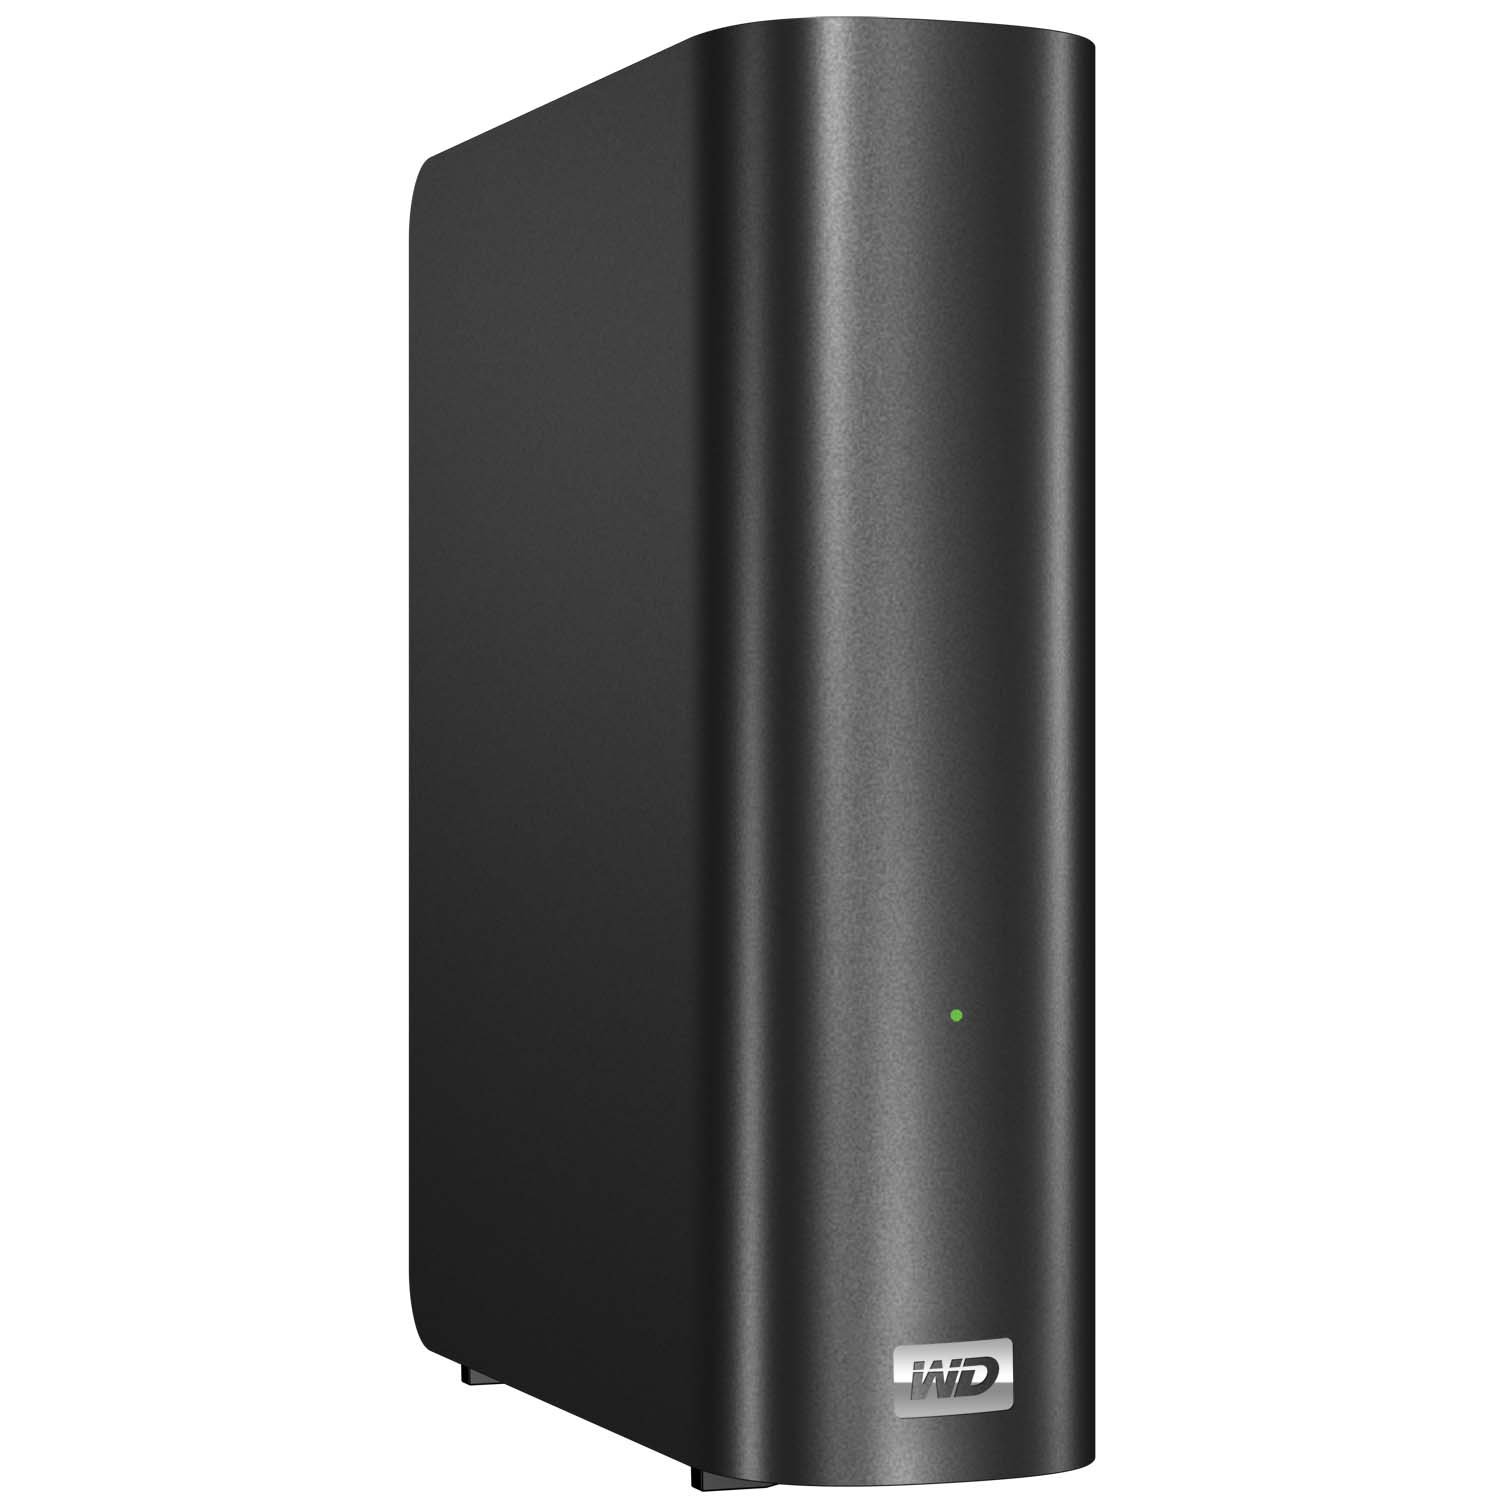 WD My Book Live 3TB Personal Cloud Storage NAS Share Files and Photos